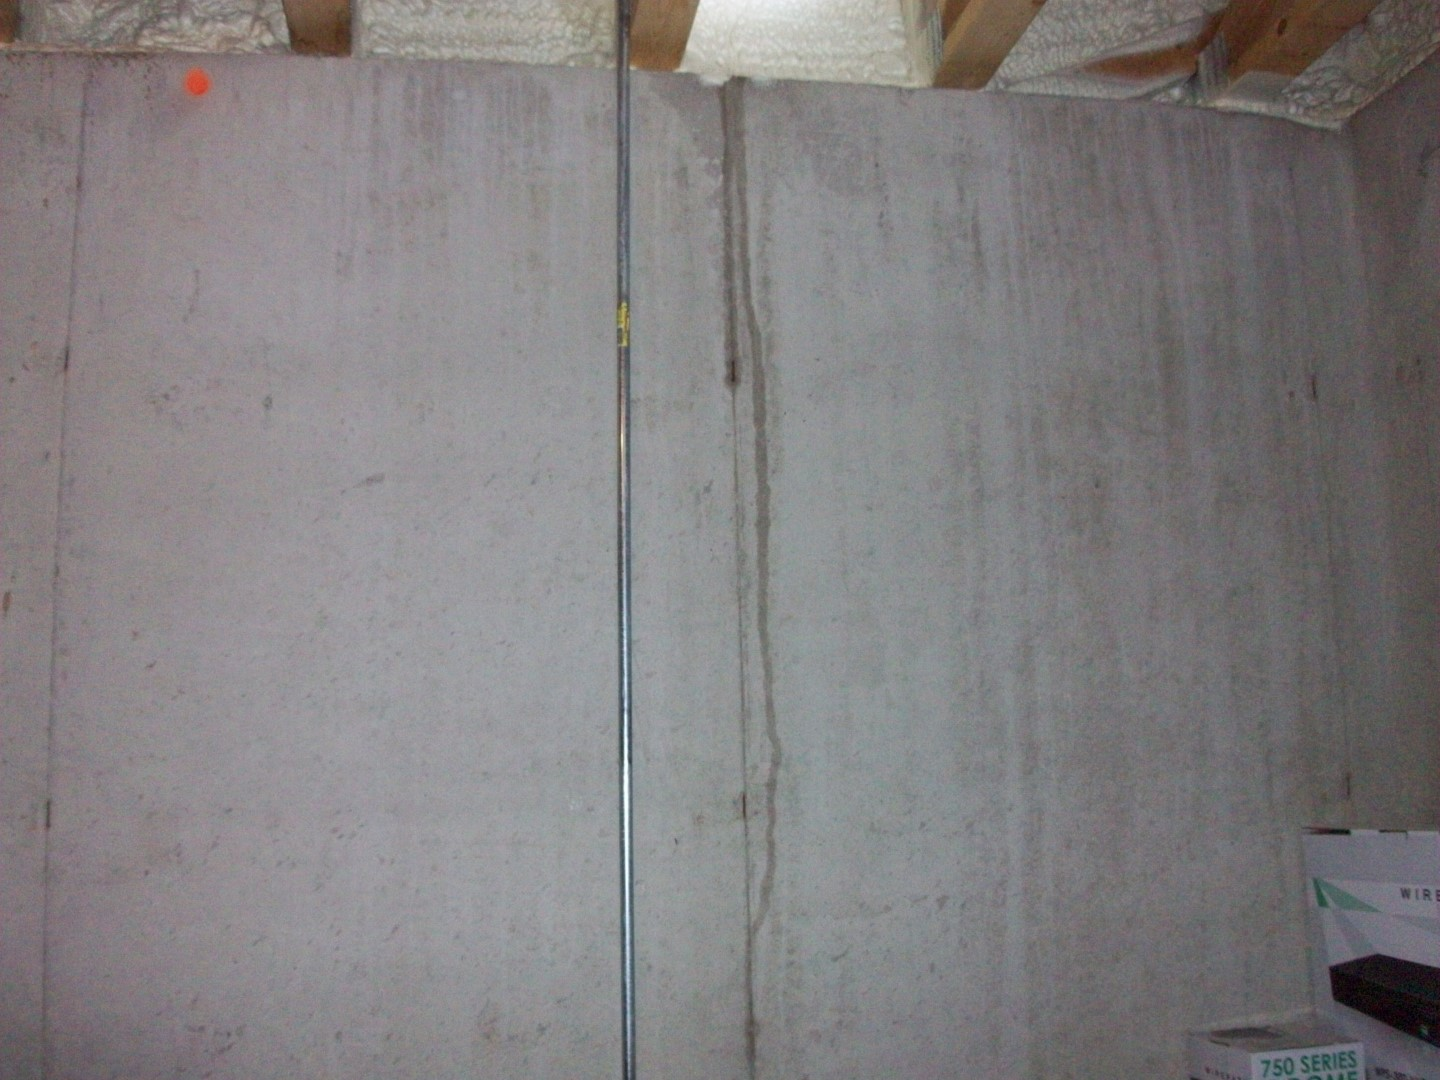 Bathroom Leaking To Floor Below : Photos from new construction inspections part vi